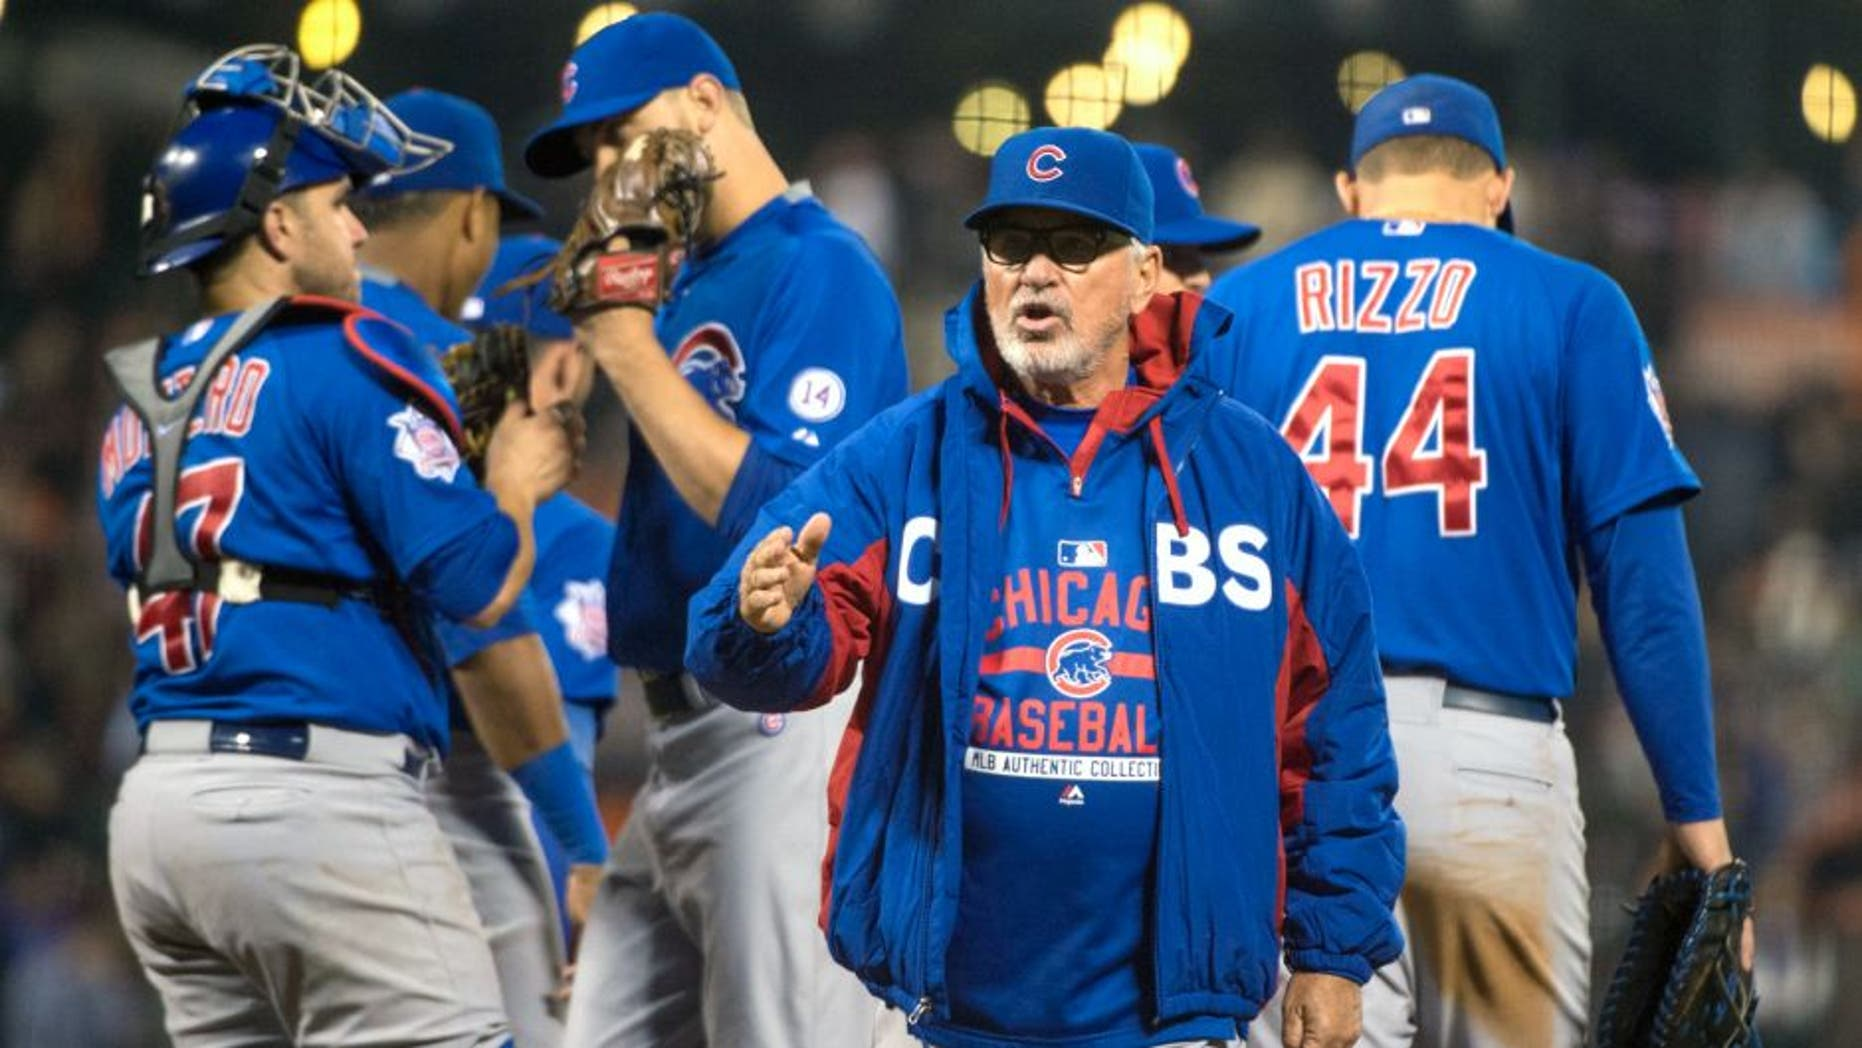 August 25, 2015; San Francisco, CA, USA; Chicago Cubs manager Joe Maddon (70) completes a pitching change during the seventh inning against the San Francisco Giants at AT&T Park. Mandatory Credit: Kyle Terada-USA TODAY Sports